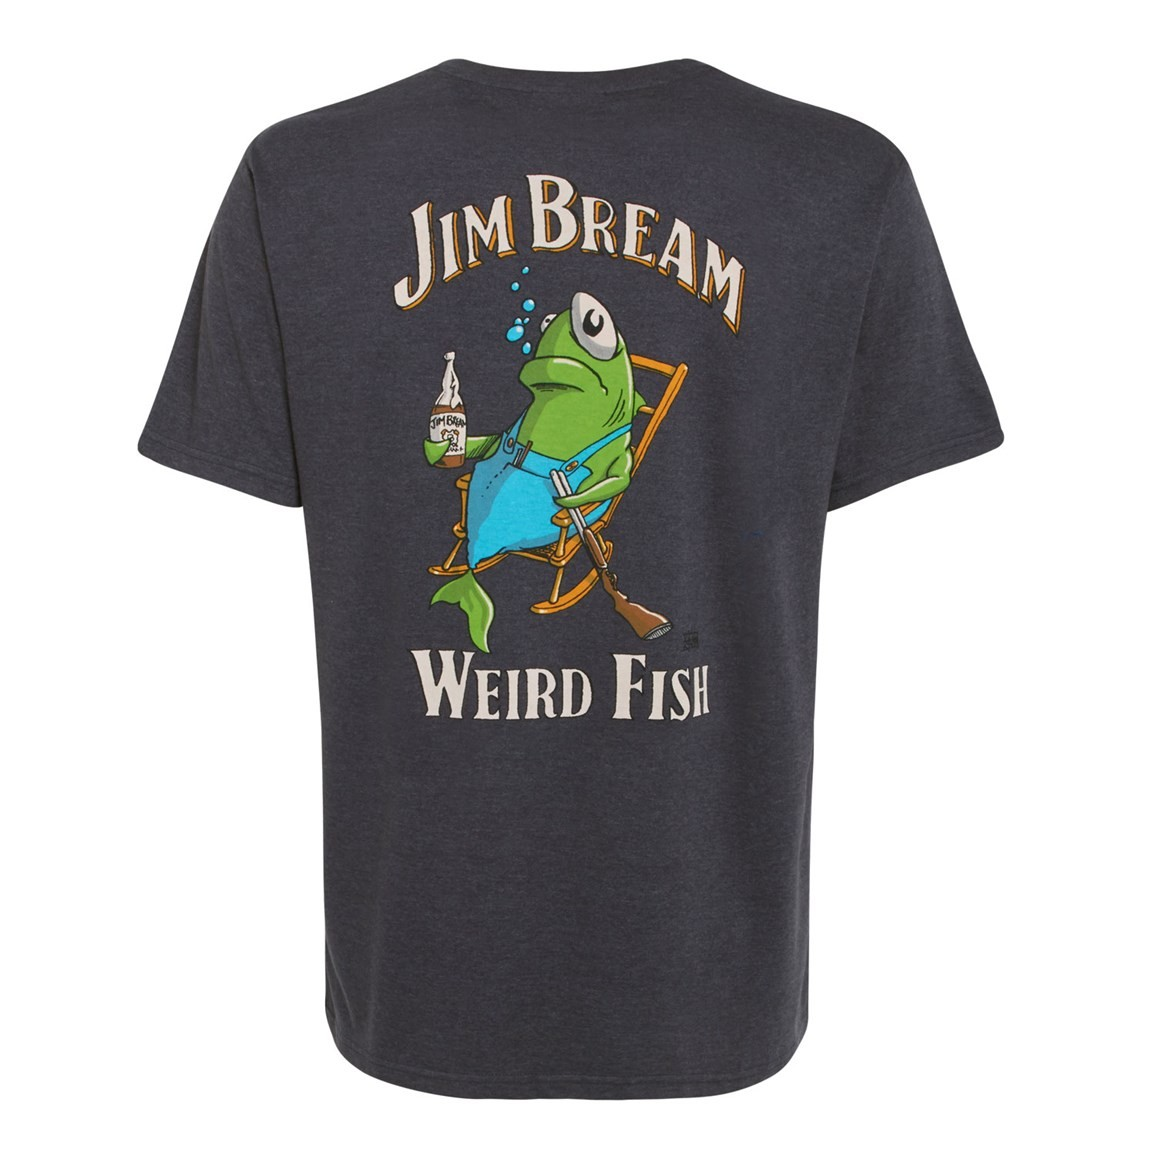 Weird Fish Jim Bream Printed Artist T-Shirt Ebony Marl